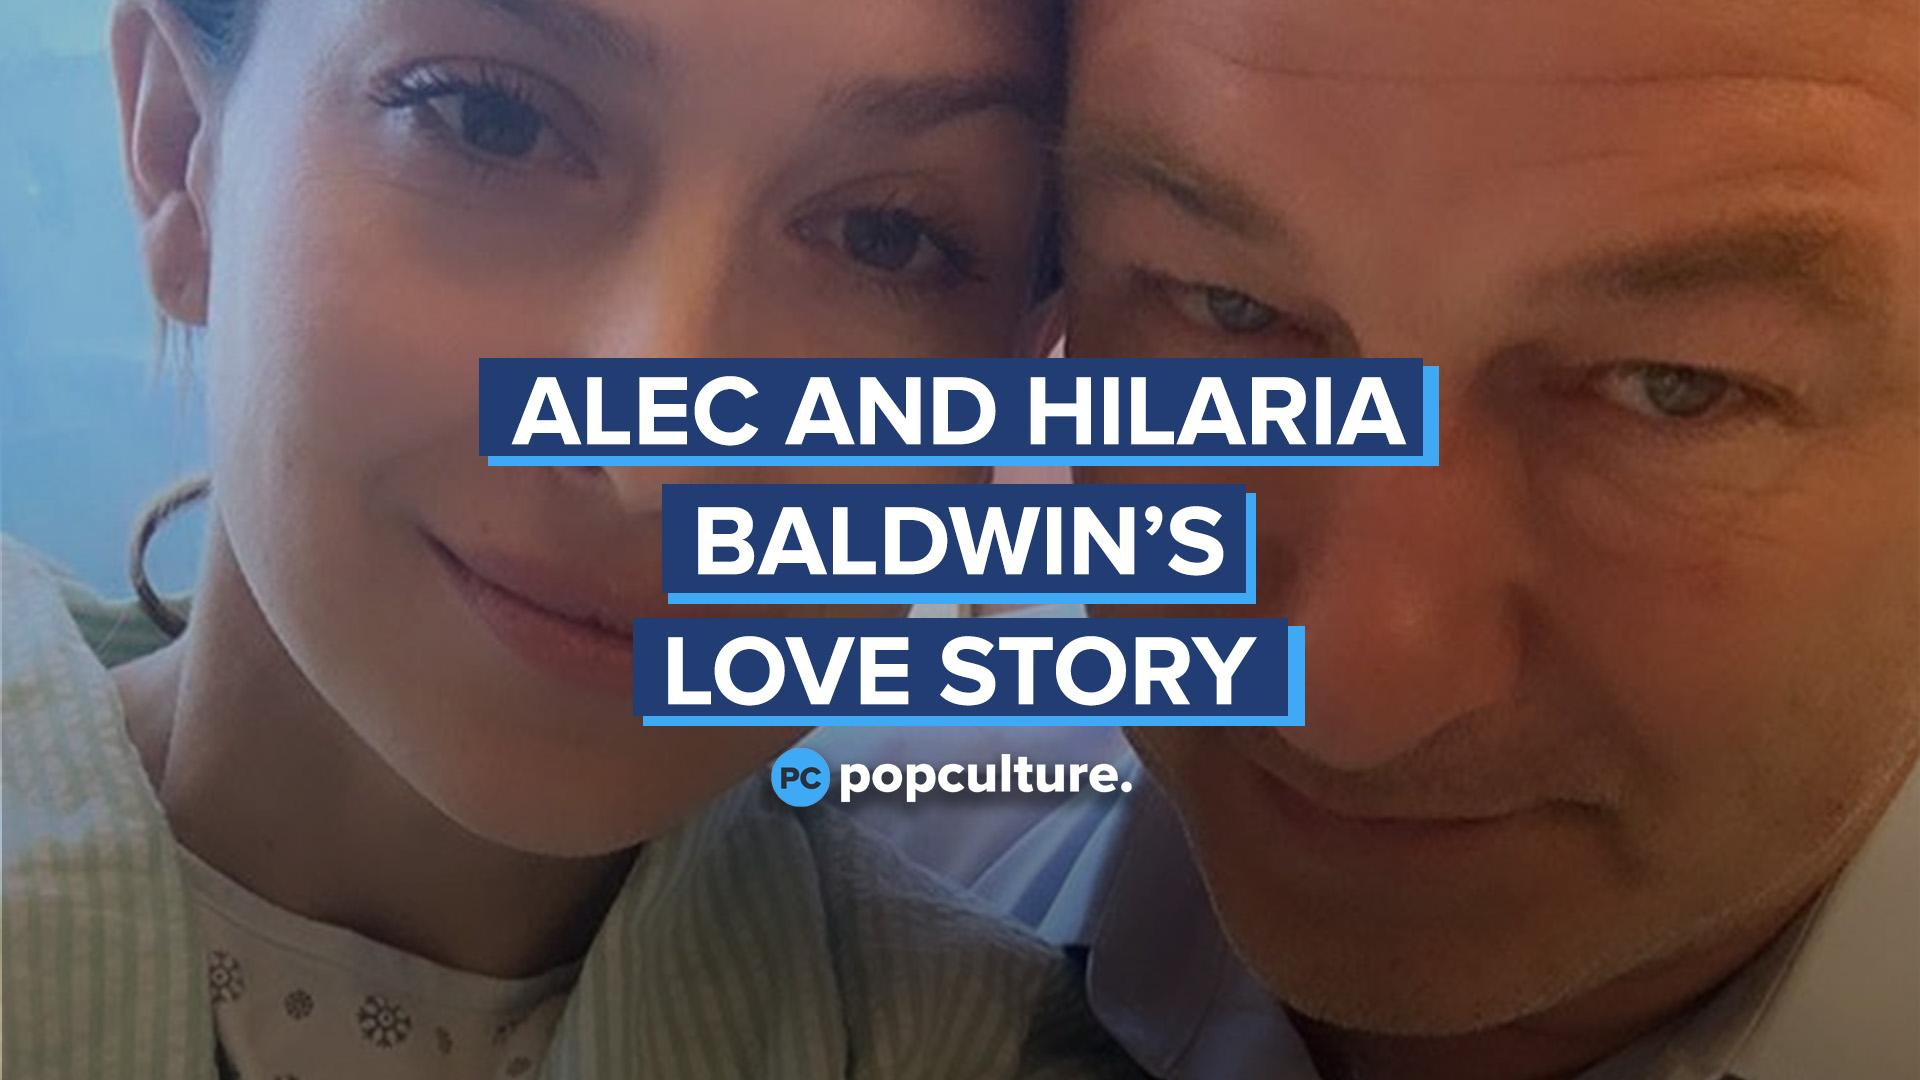 Alec and Hilaria Baldwin's Love Story screen capture